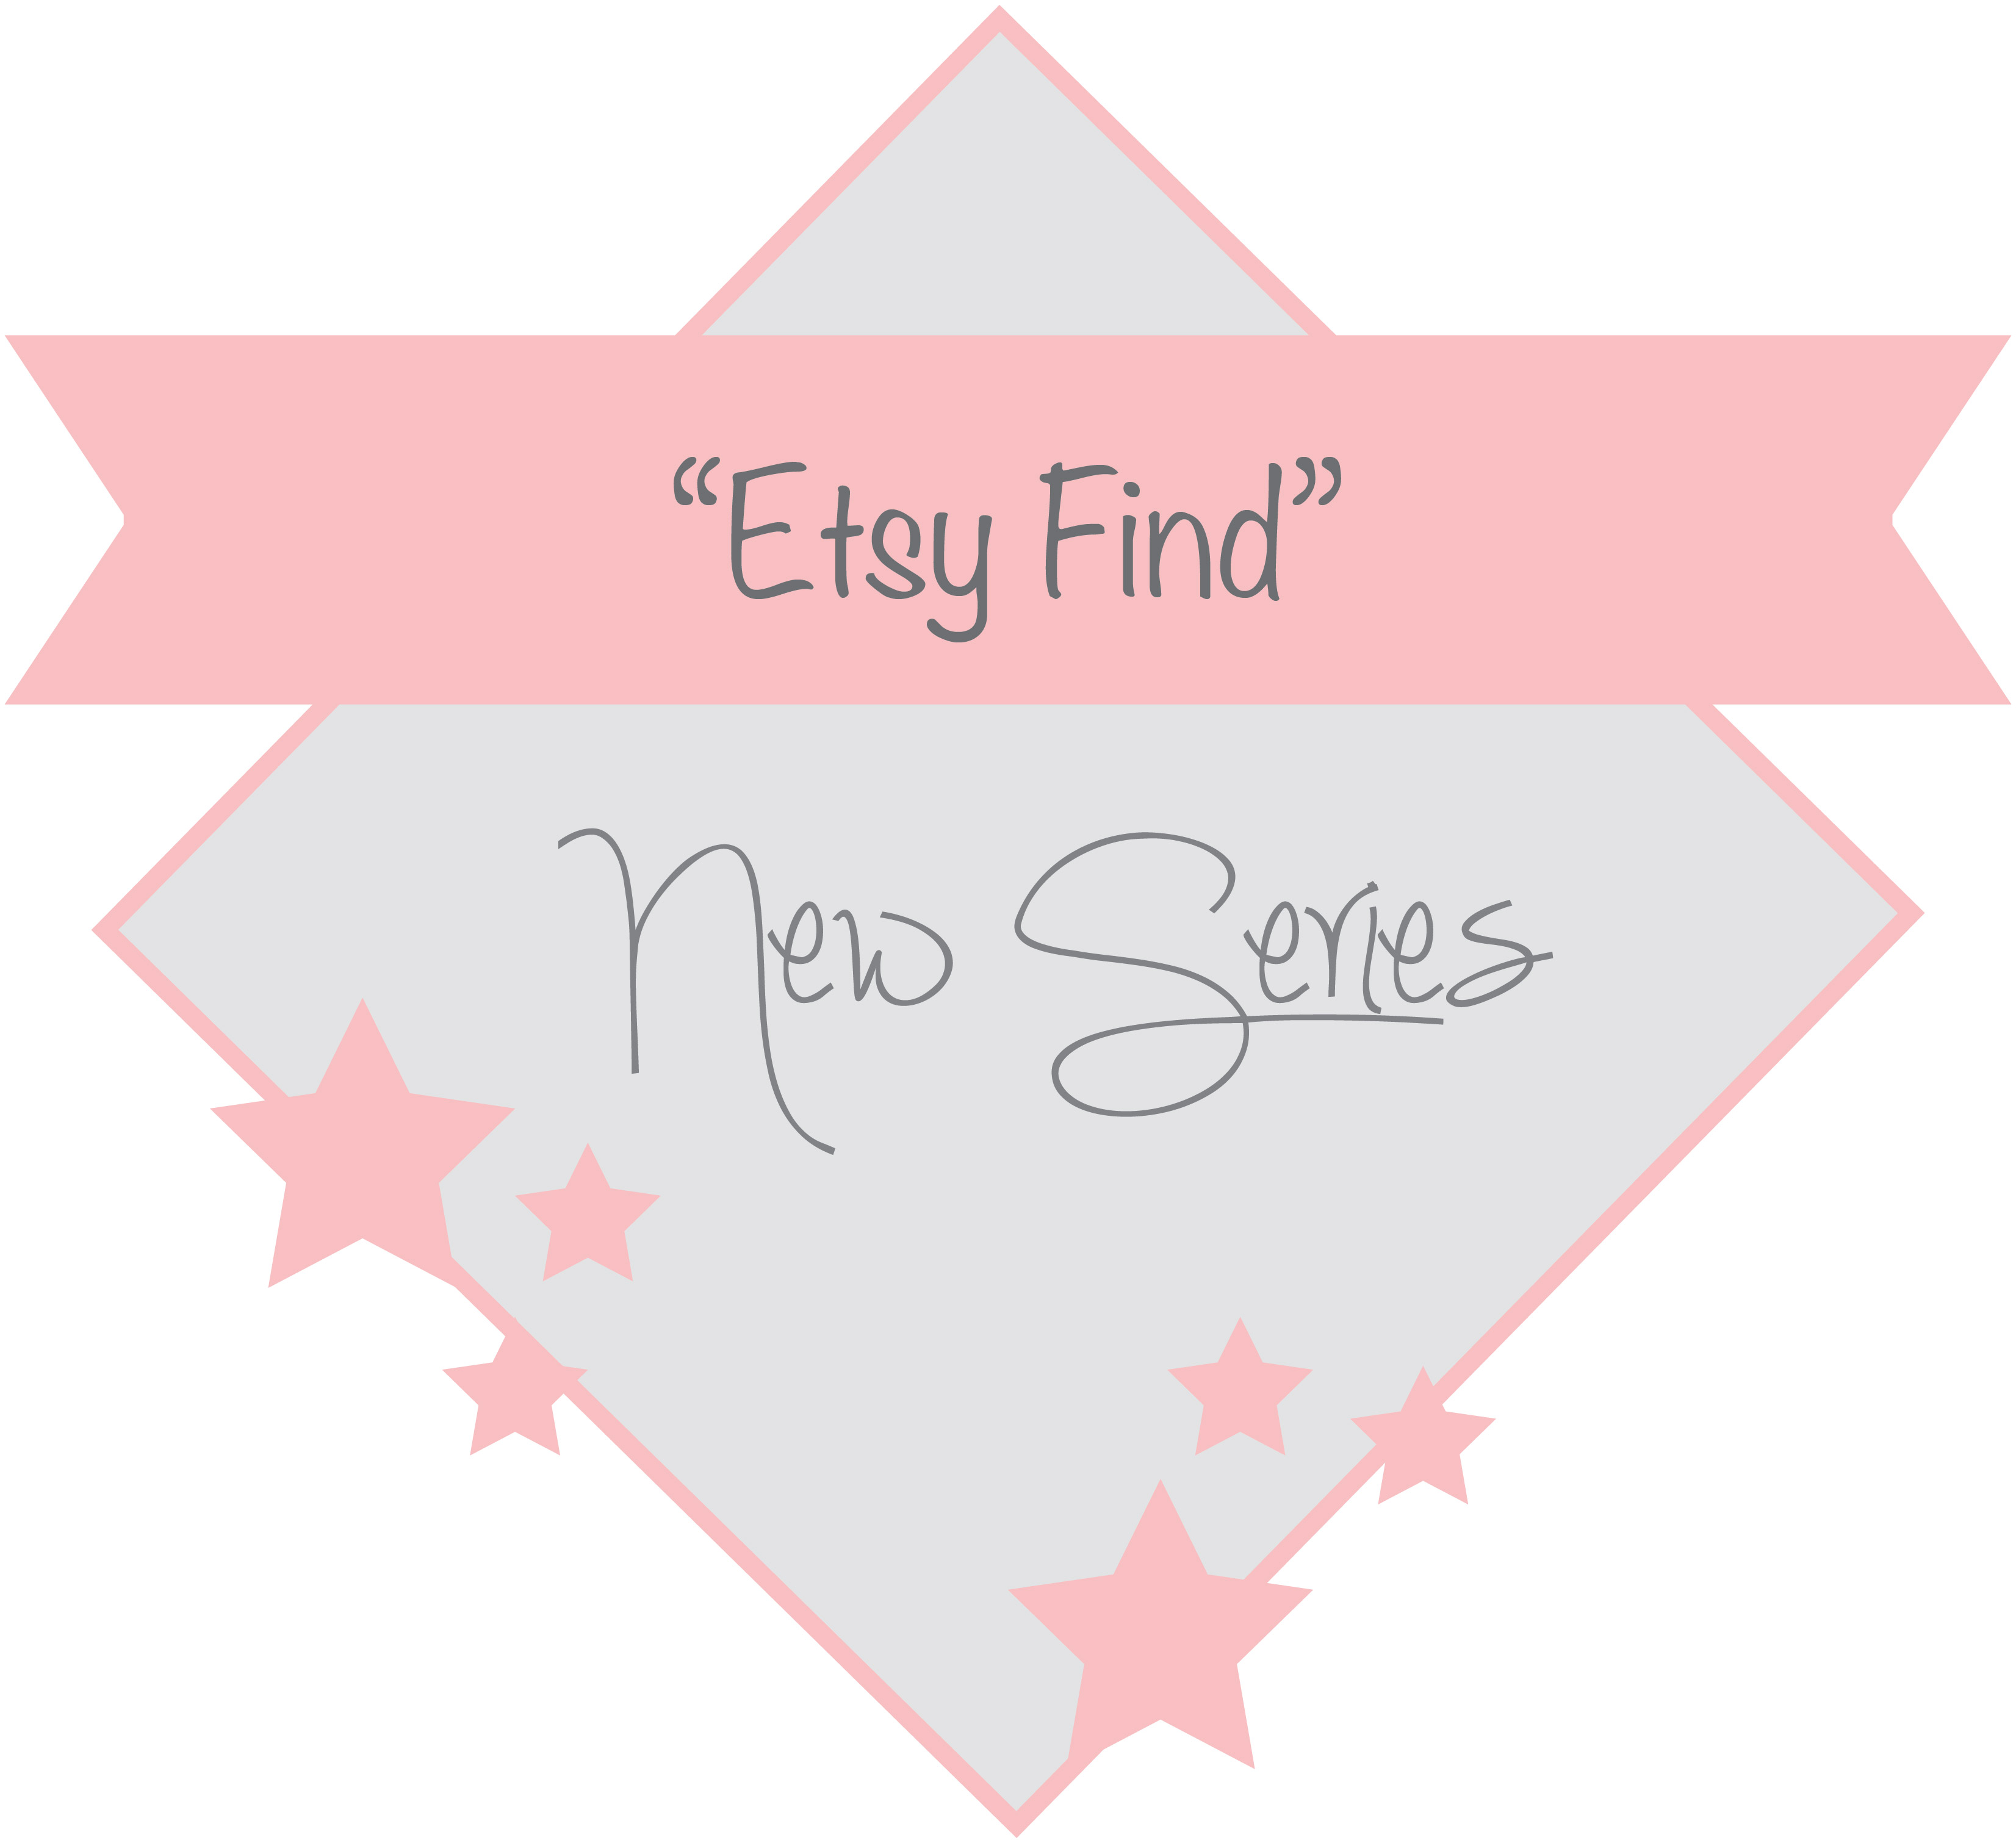 """New Series: """"Etsy Find"""""""